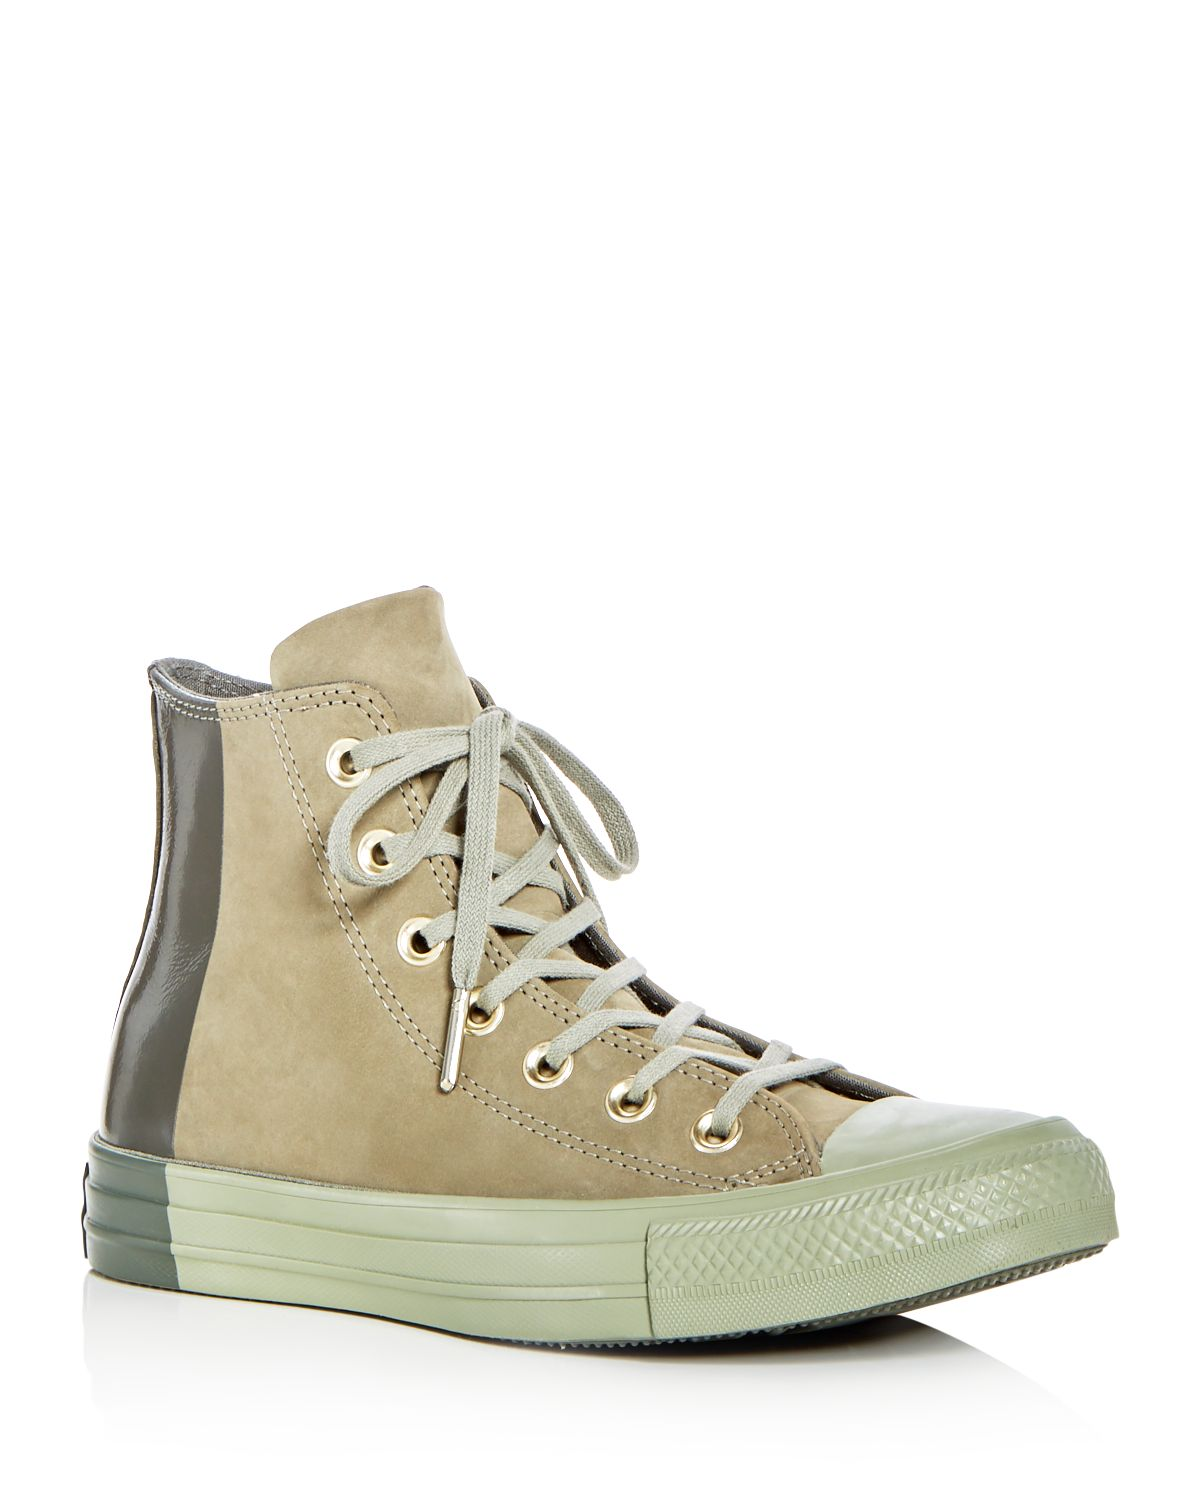 Converse Women's Chuck Taylor All Star Tonal Nubuck Leather Lace Up Sneakers